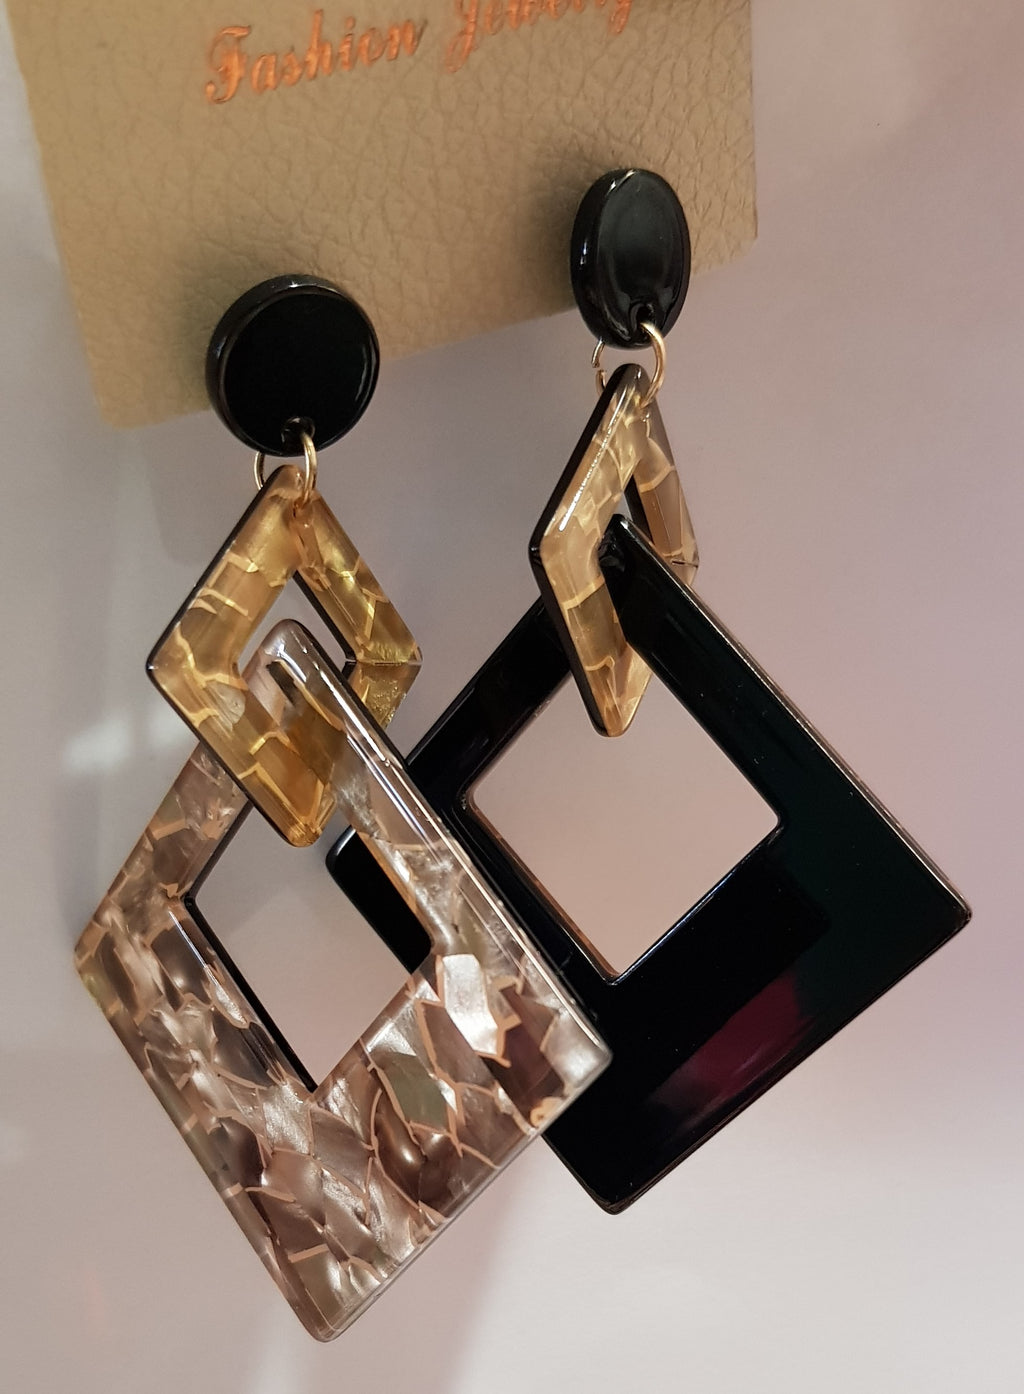 Square double sided Earing's